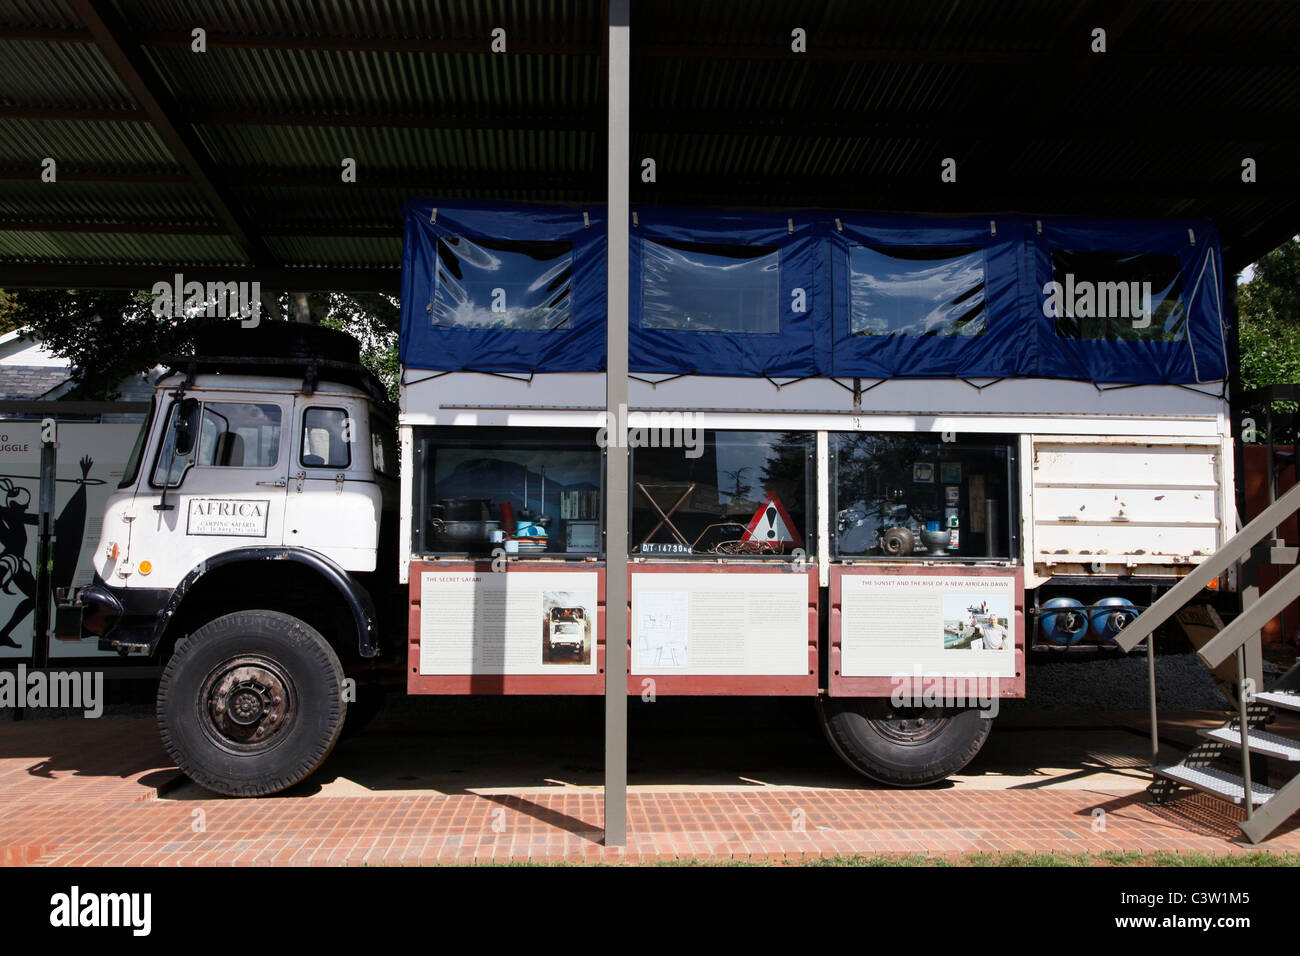 Overland Truck Used To Smuggle Weapons Into South Africa The Museum Stock Photo Alamy